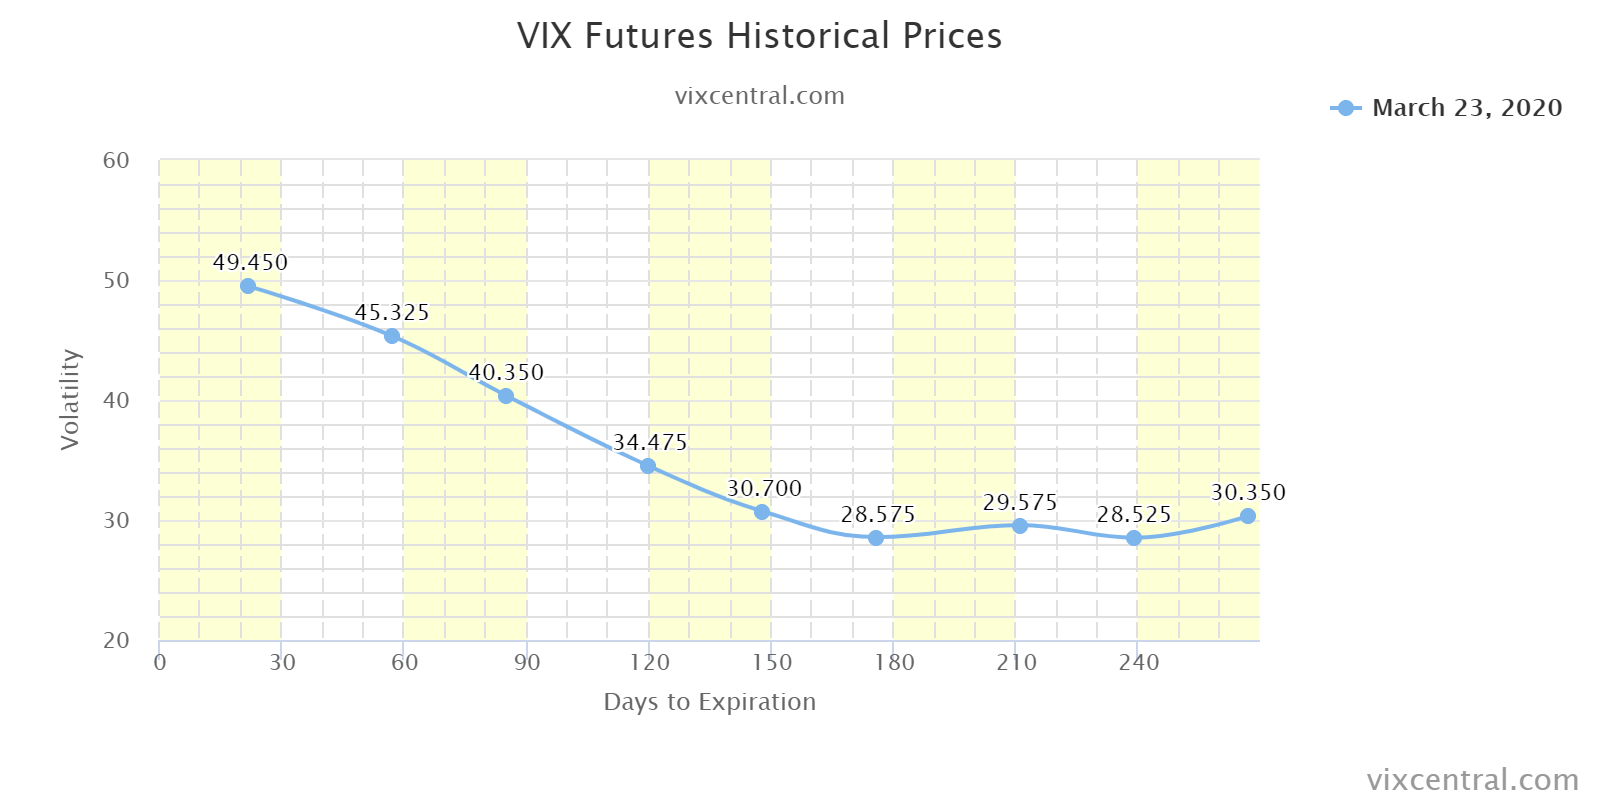 2-vix-futures-historical-p (1)